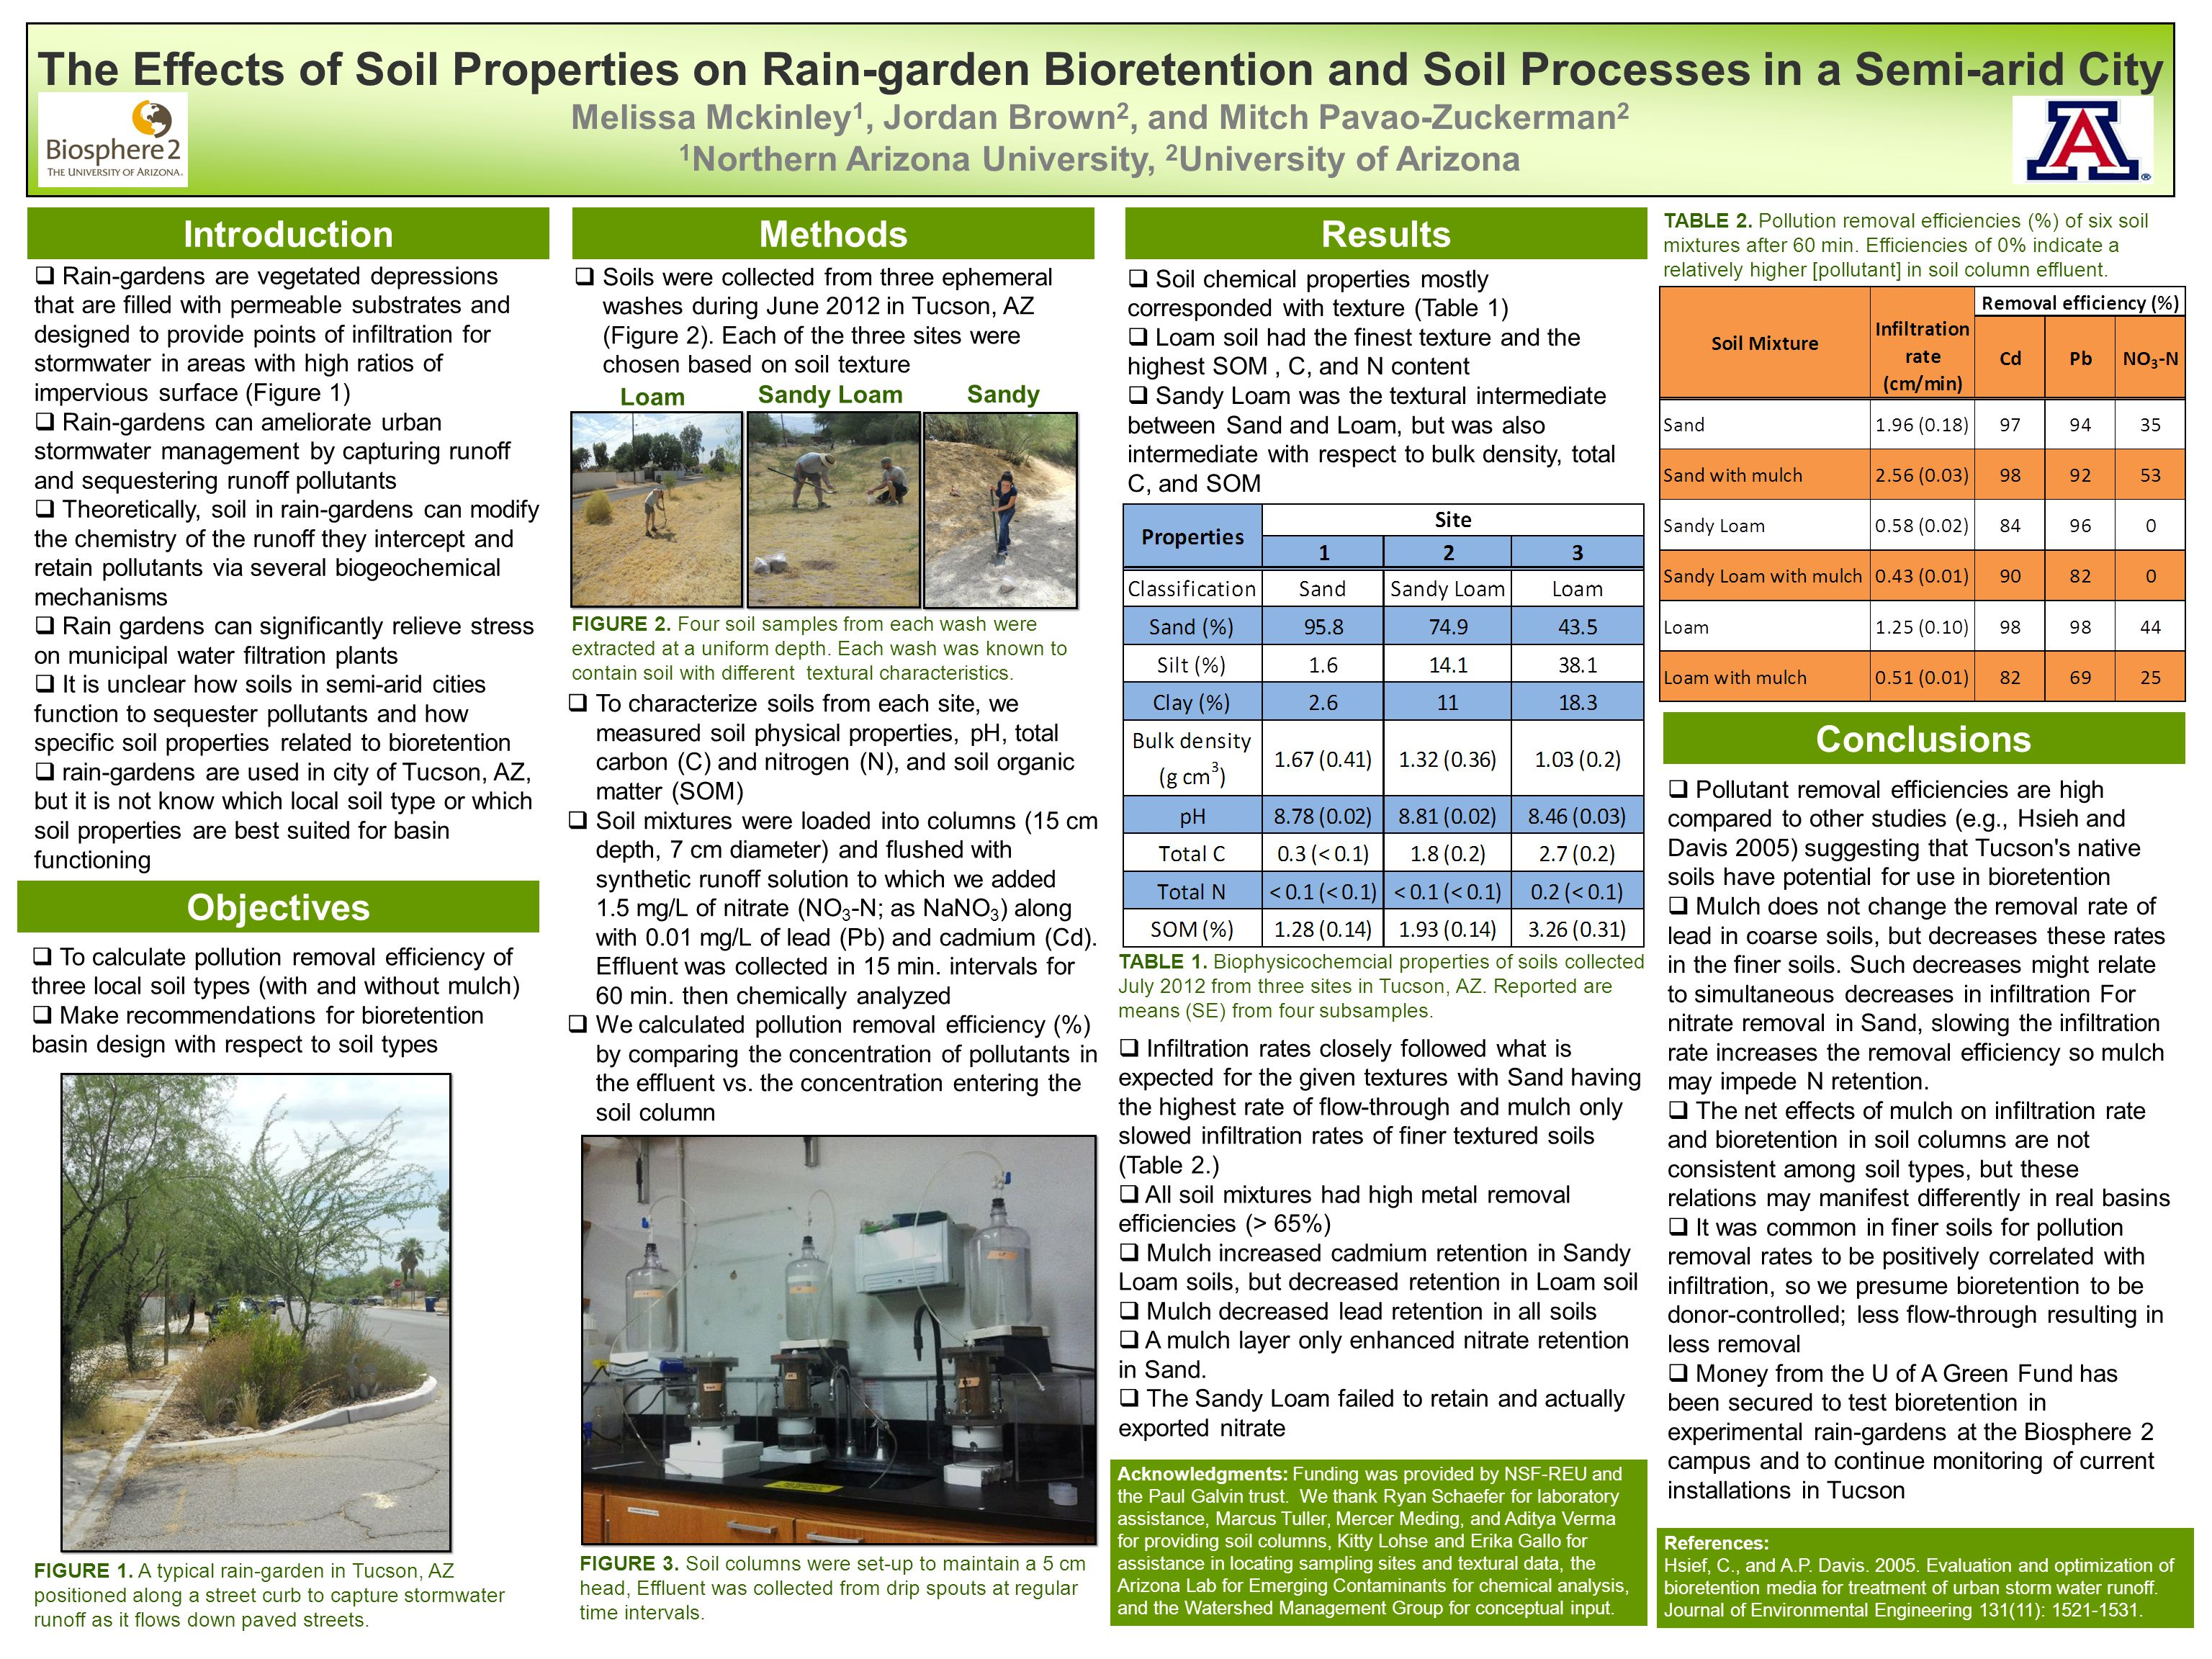 The Effects of Soil Properties on Rain-garden Bioretention and Soil Processes in a Semi-arid City Melissa Mckinley 1, Jordan Brown 2, and Mitch Pavao-Zuckerman 2 1 Northern Arizona University, 2 University of Arizona IntroductionMethodsResults Conclusions Acknowledgments: Funding was provided by NSF-REU and the Paul Galvin trust.